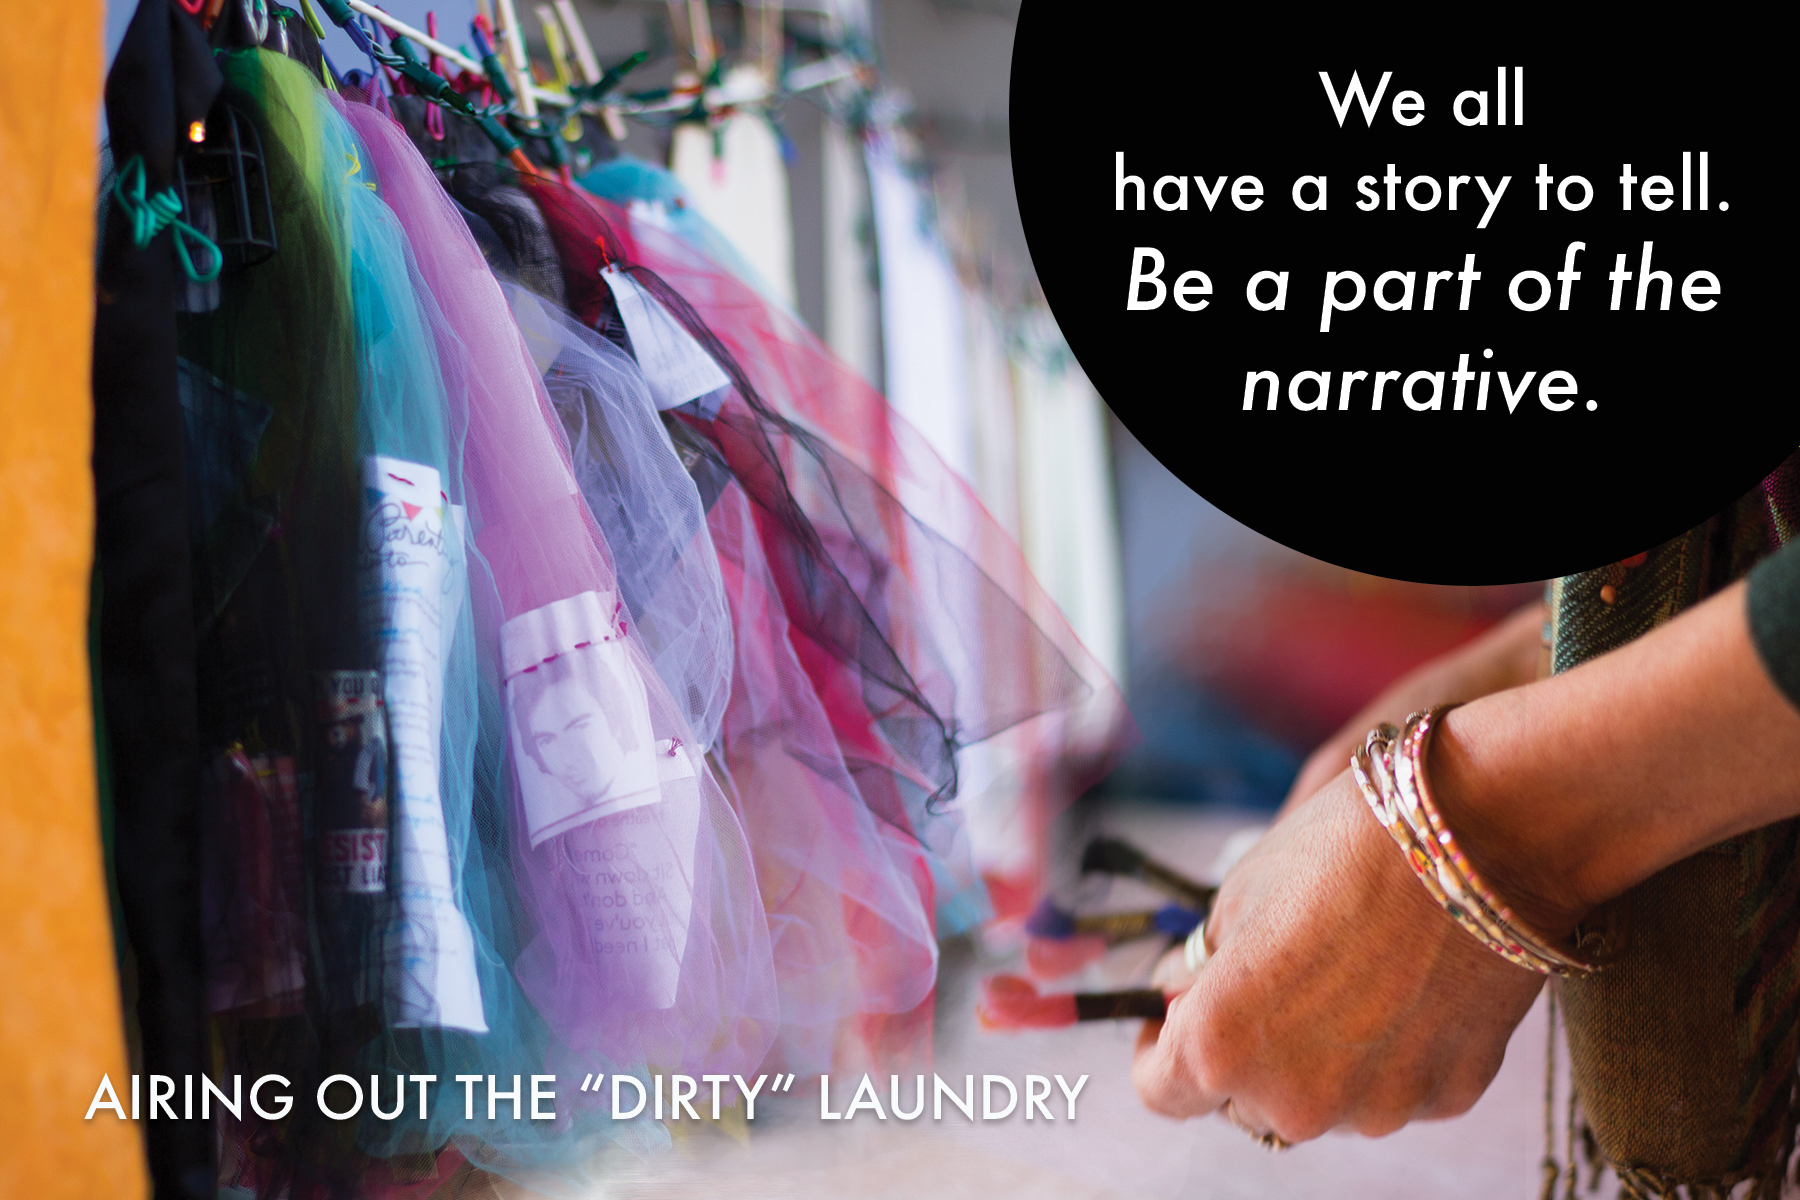 "Airing Out the ""Dirty"" Laundry is… - an ongoing community art movement that invites participation in two distinct, but connected ways.Women* are invited to create pieces of visual storytelling that share and reveal stories of strength, hope, unity, and resistance of oppression, injustice, and exclusion.These stories are collected and then joined together on laundry clotheslines in installations throughout our community.Each story has a top layer that flows freely and is meant to be lifted as an invitation to the viewer to engage in and reveal the story underneath.Let's continue joining our voices together and engaging our communities in dialogue about equity and social justice.* cis women, trans women, women identifying, and non binary peoplePhotos by Erin BrightonPostcard graphic design by Karen Spears"